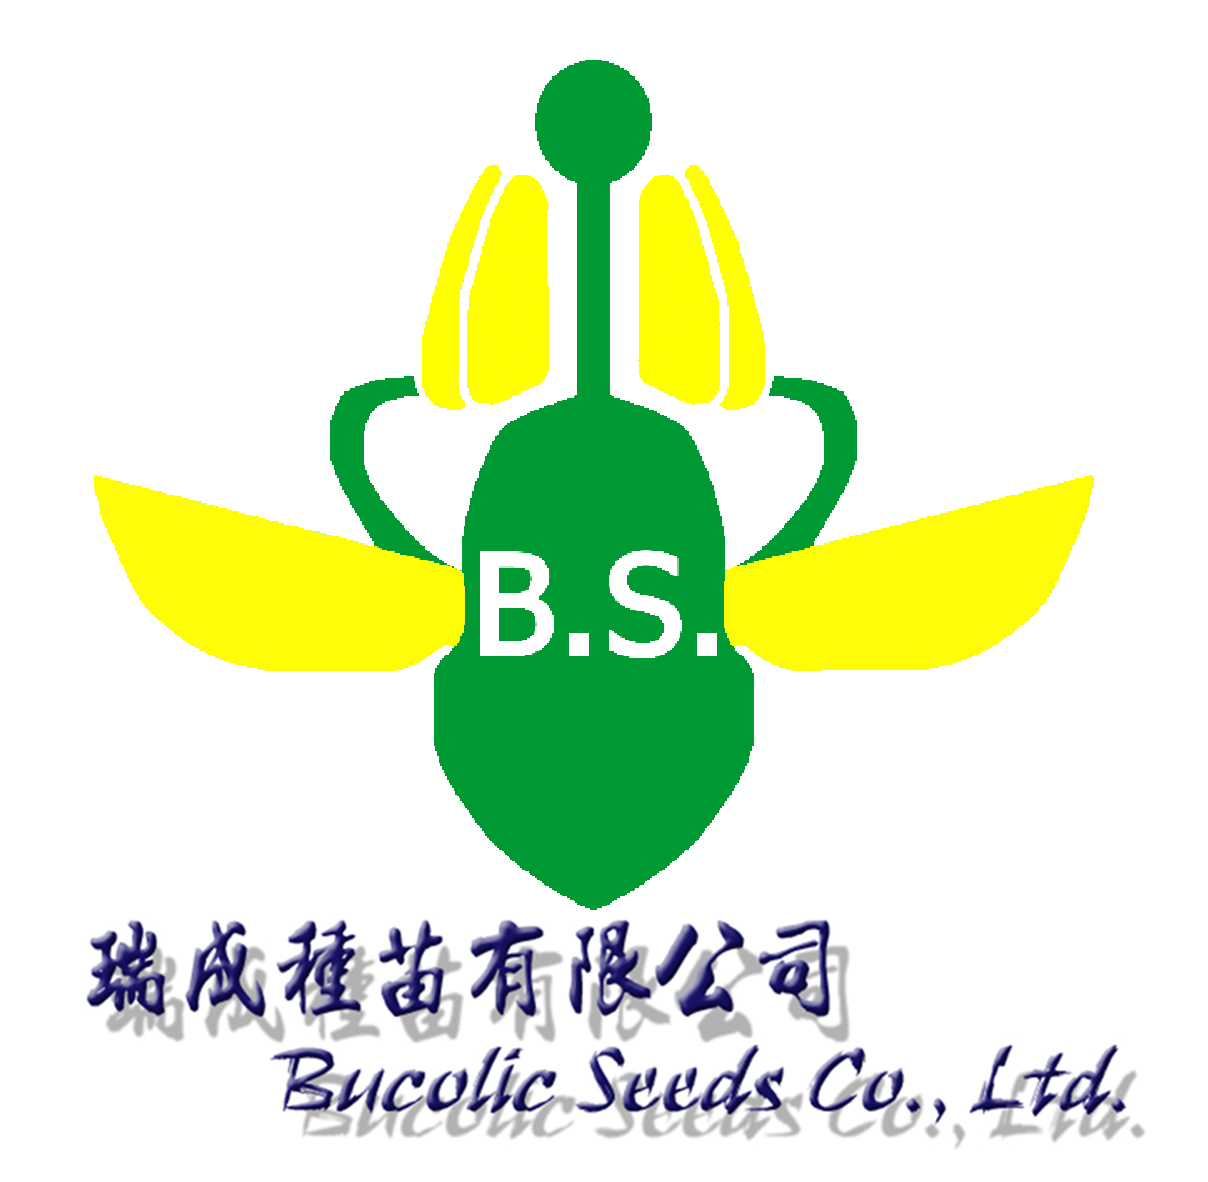 Bucolic Seeds CO., LTD.